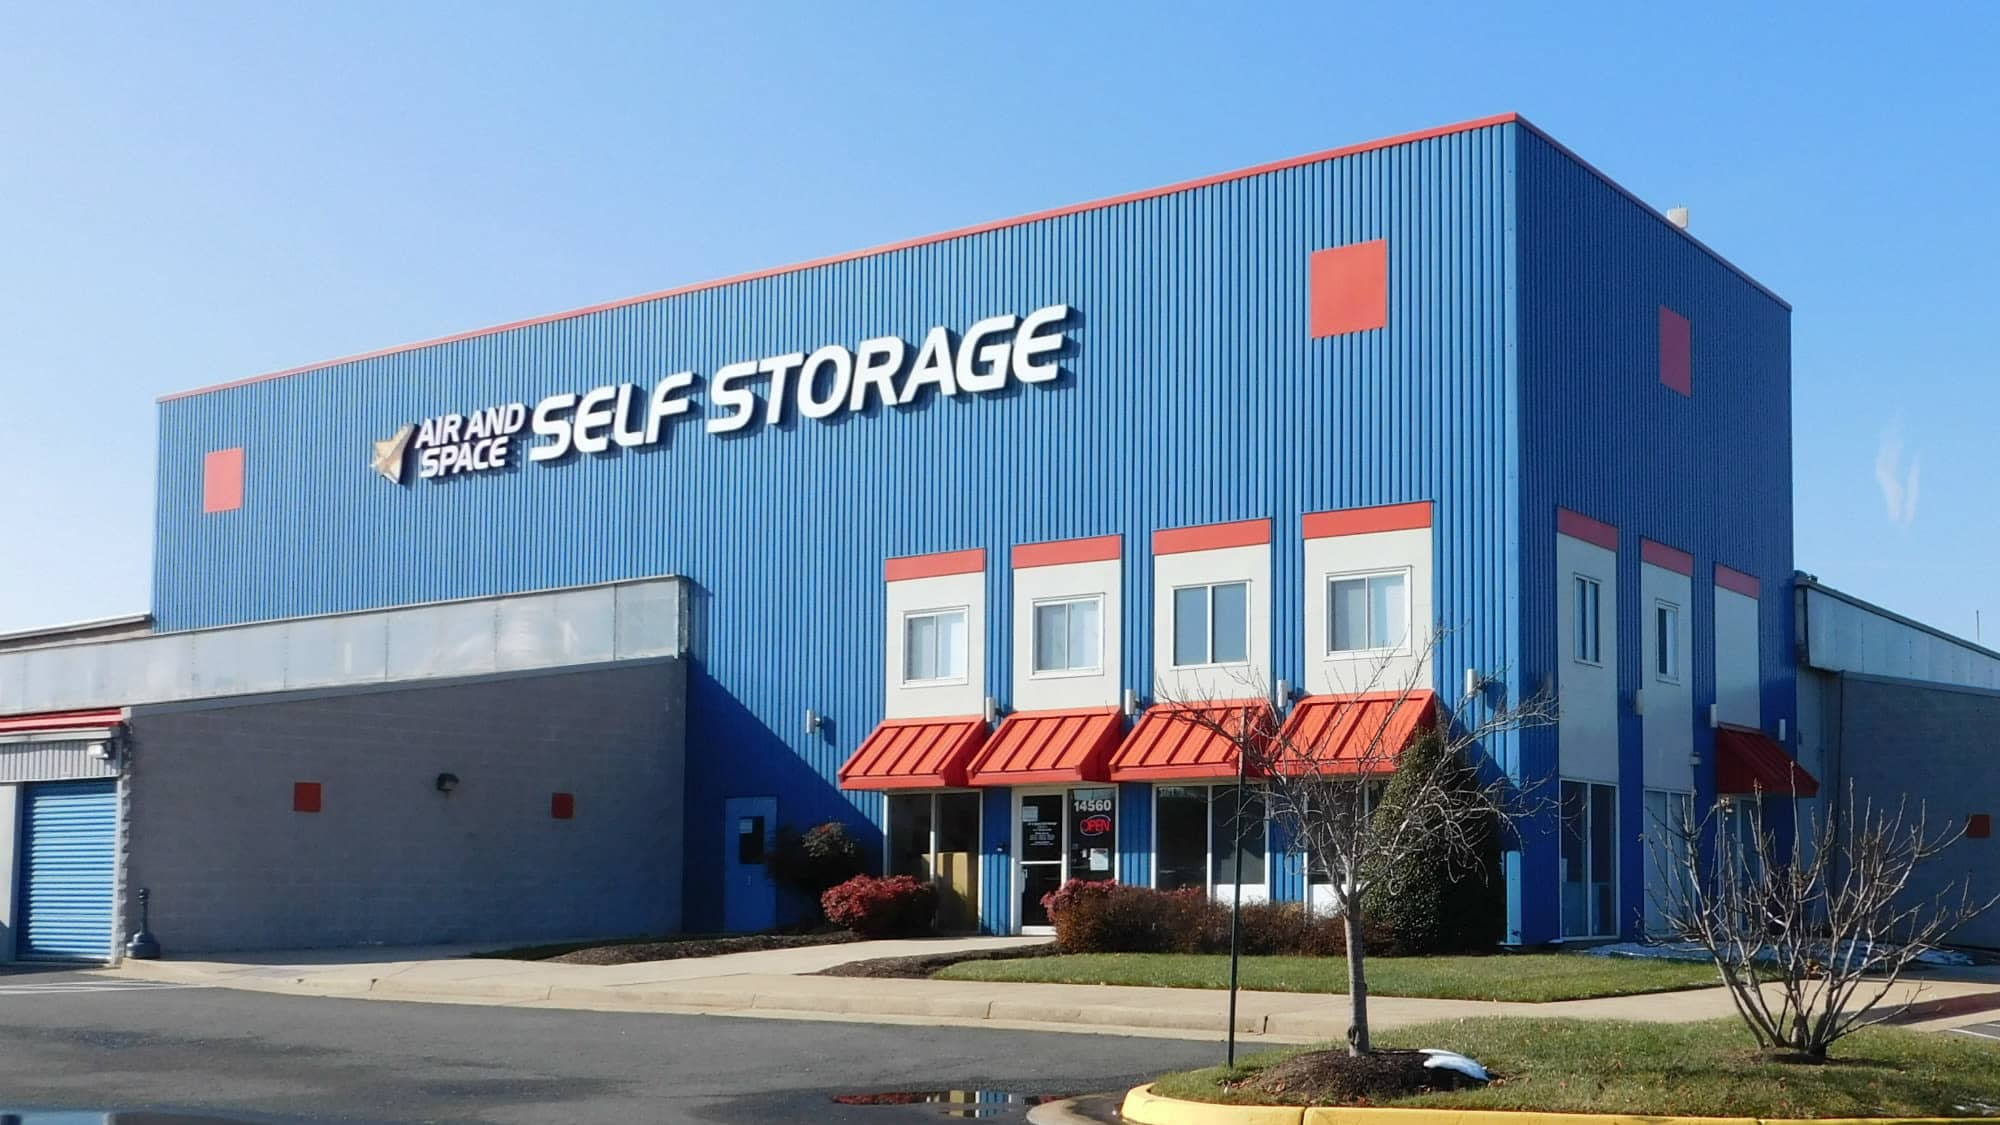 Front view of Air and Space Self Storage in Chantilly, VA